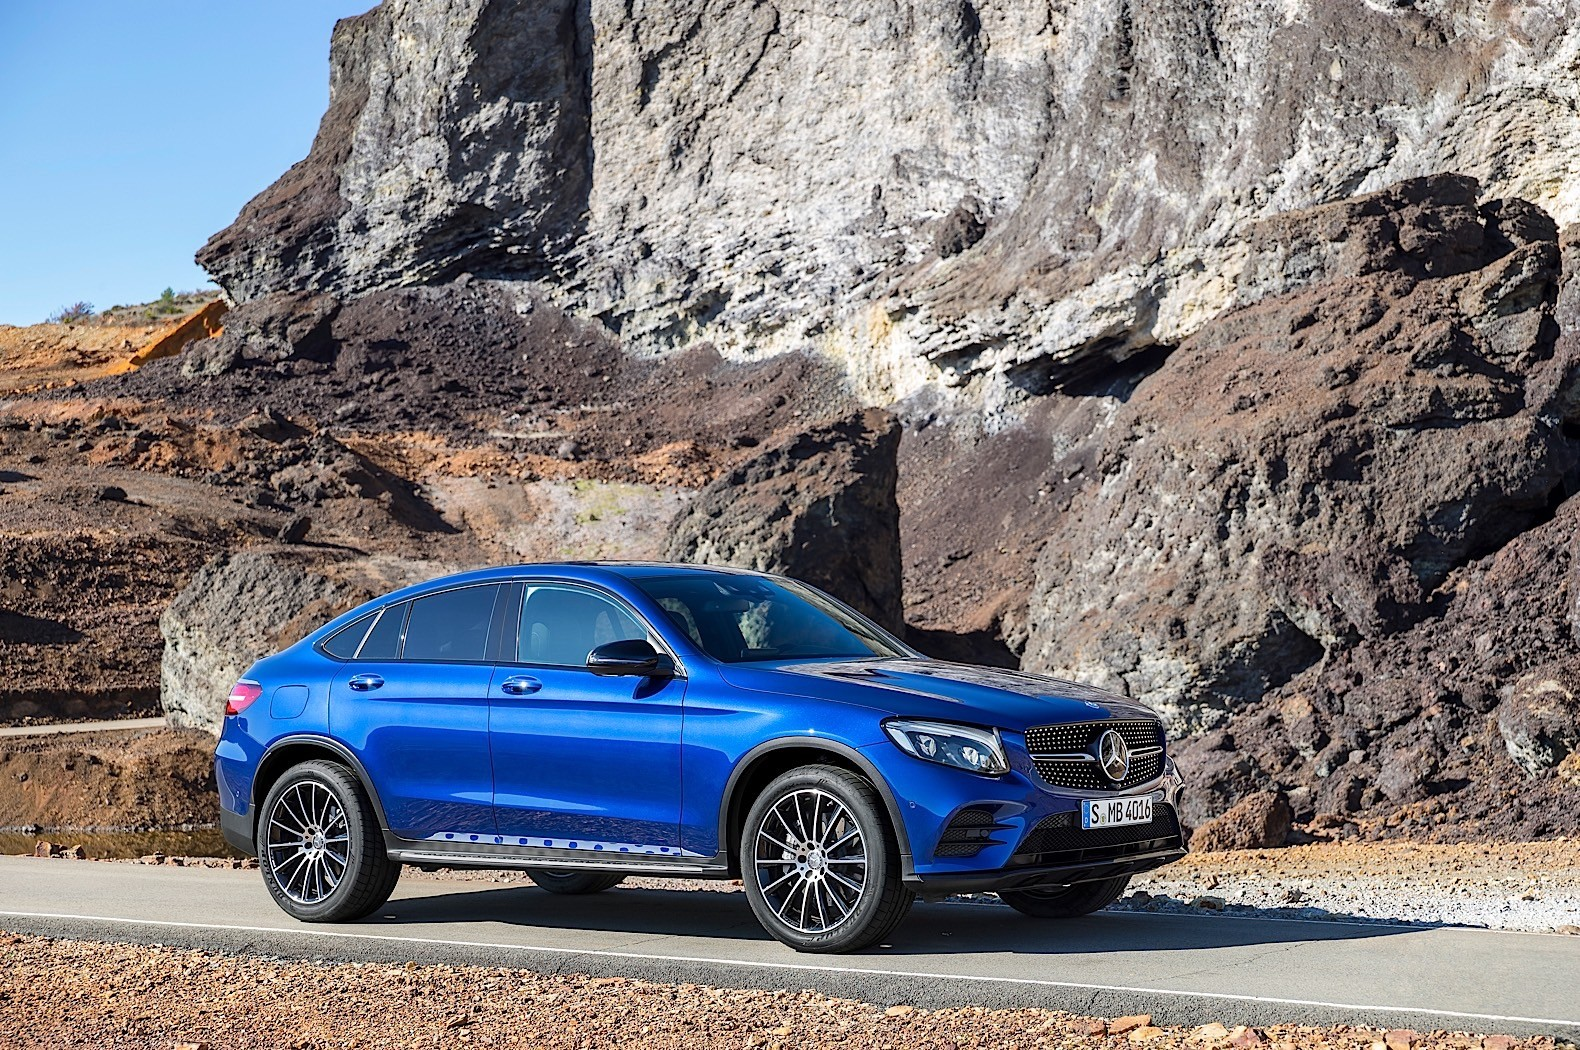 2017 mercedes benz glc coupe is out for bmw x4 blood in for Mercedes benz nyc